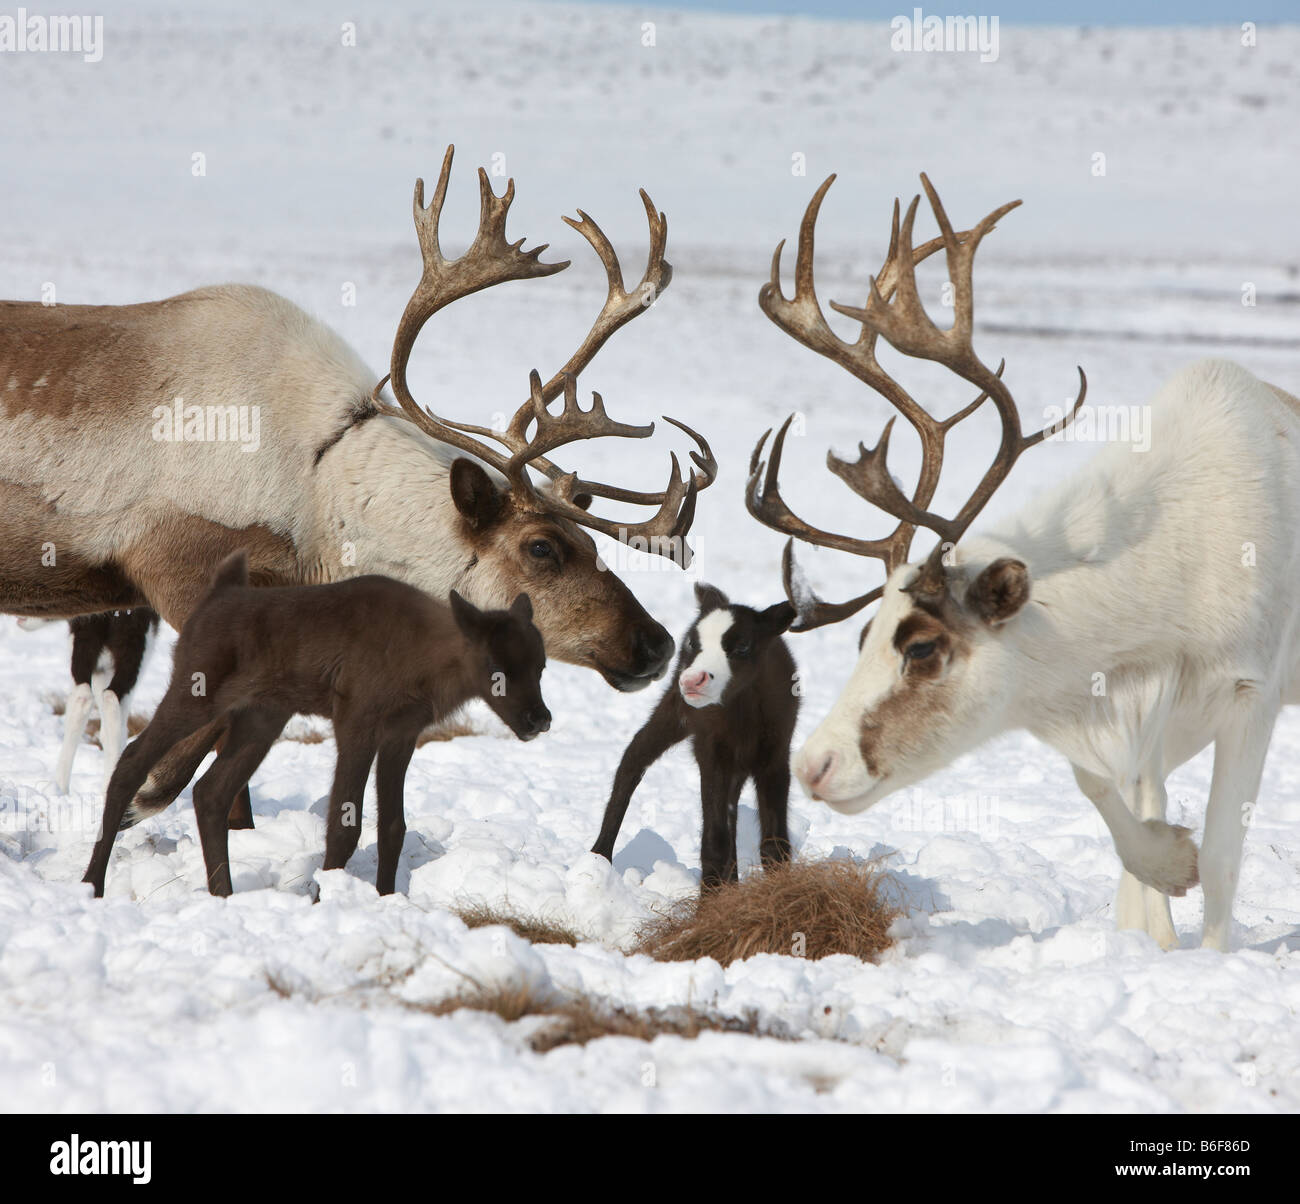 New born Reindeer with family, Kanchalan located in the Chukot Autonomous Region, Siberia Russia - Stock Image